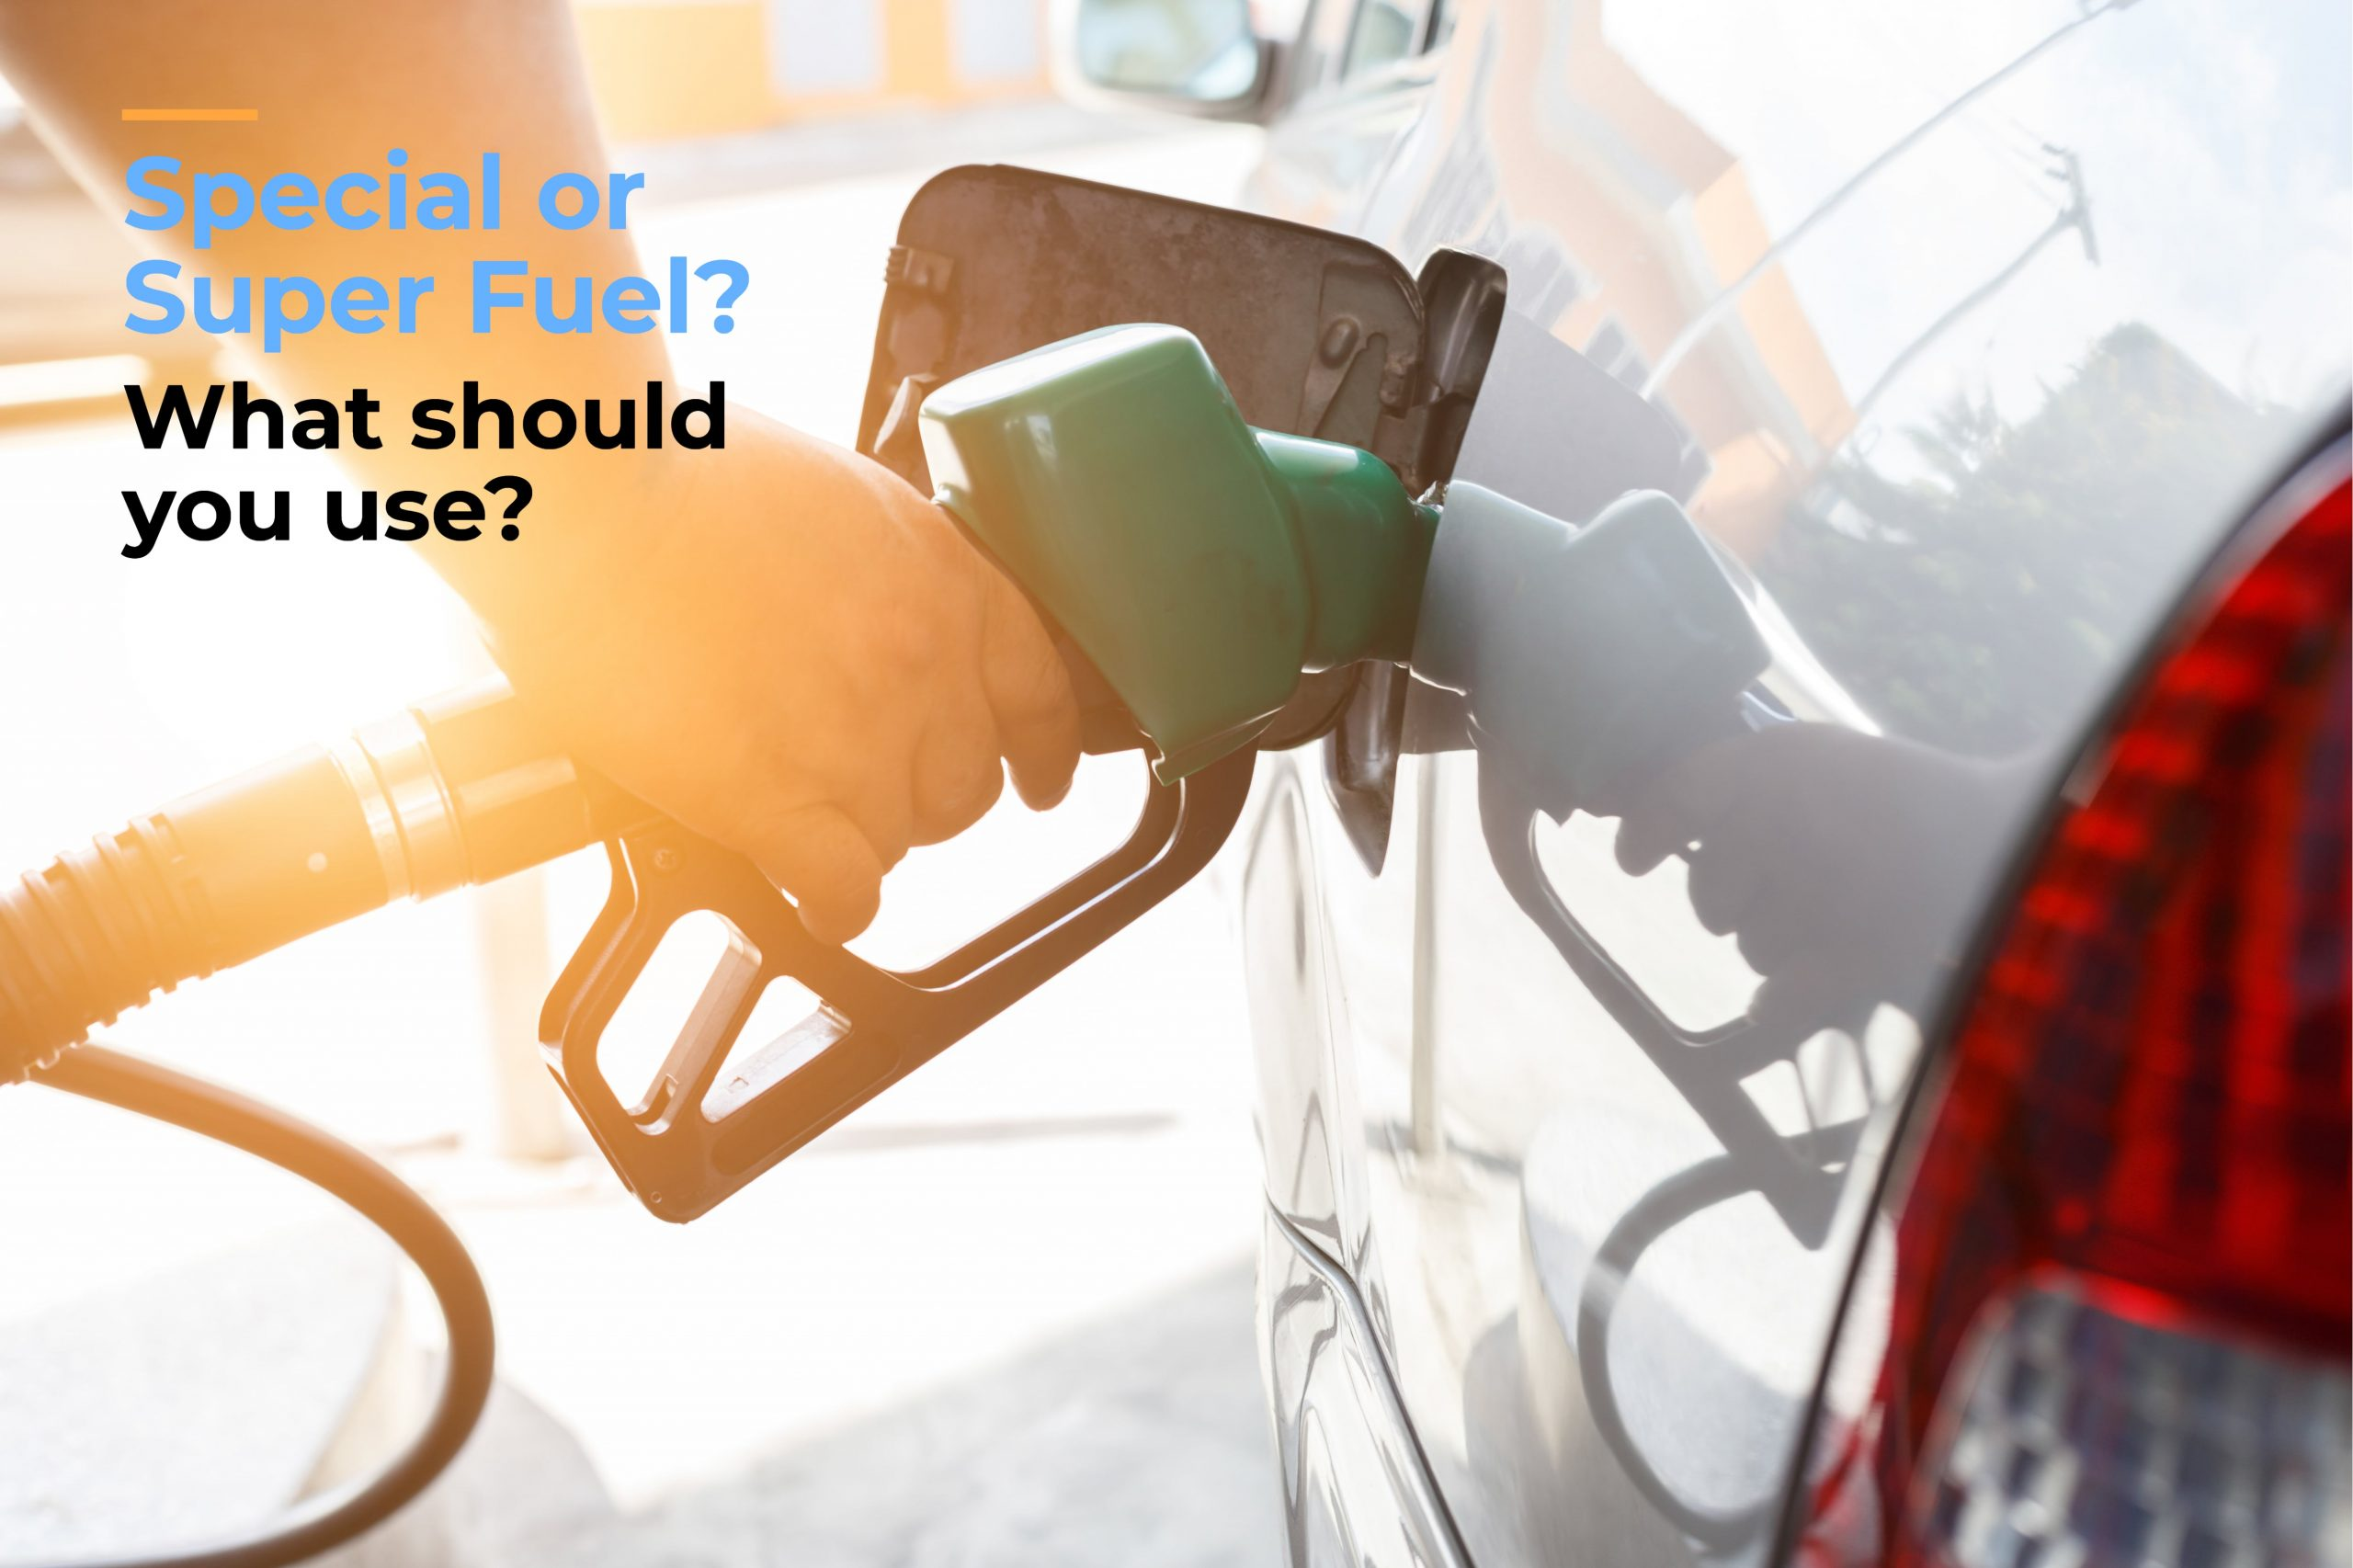 Special or Super fuel – What should you use?